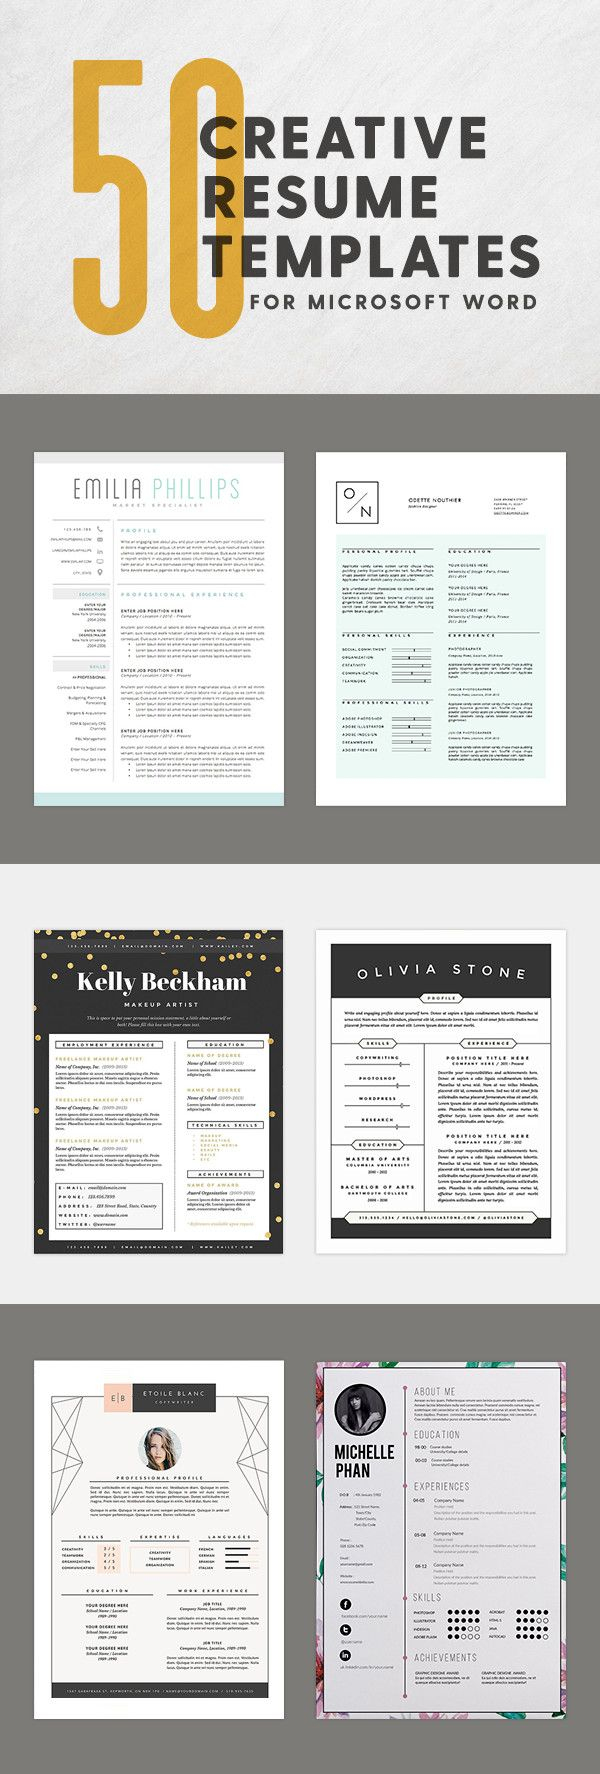 Interesting Resume Templates Eye Catching Free Resumes For College Students And Grads  College